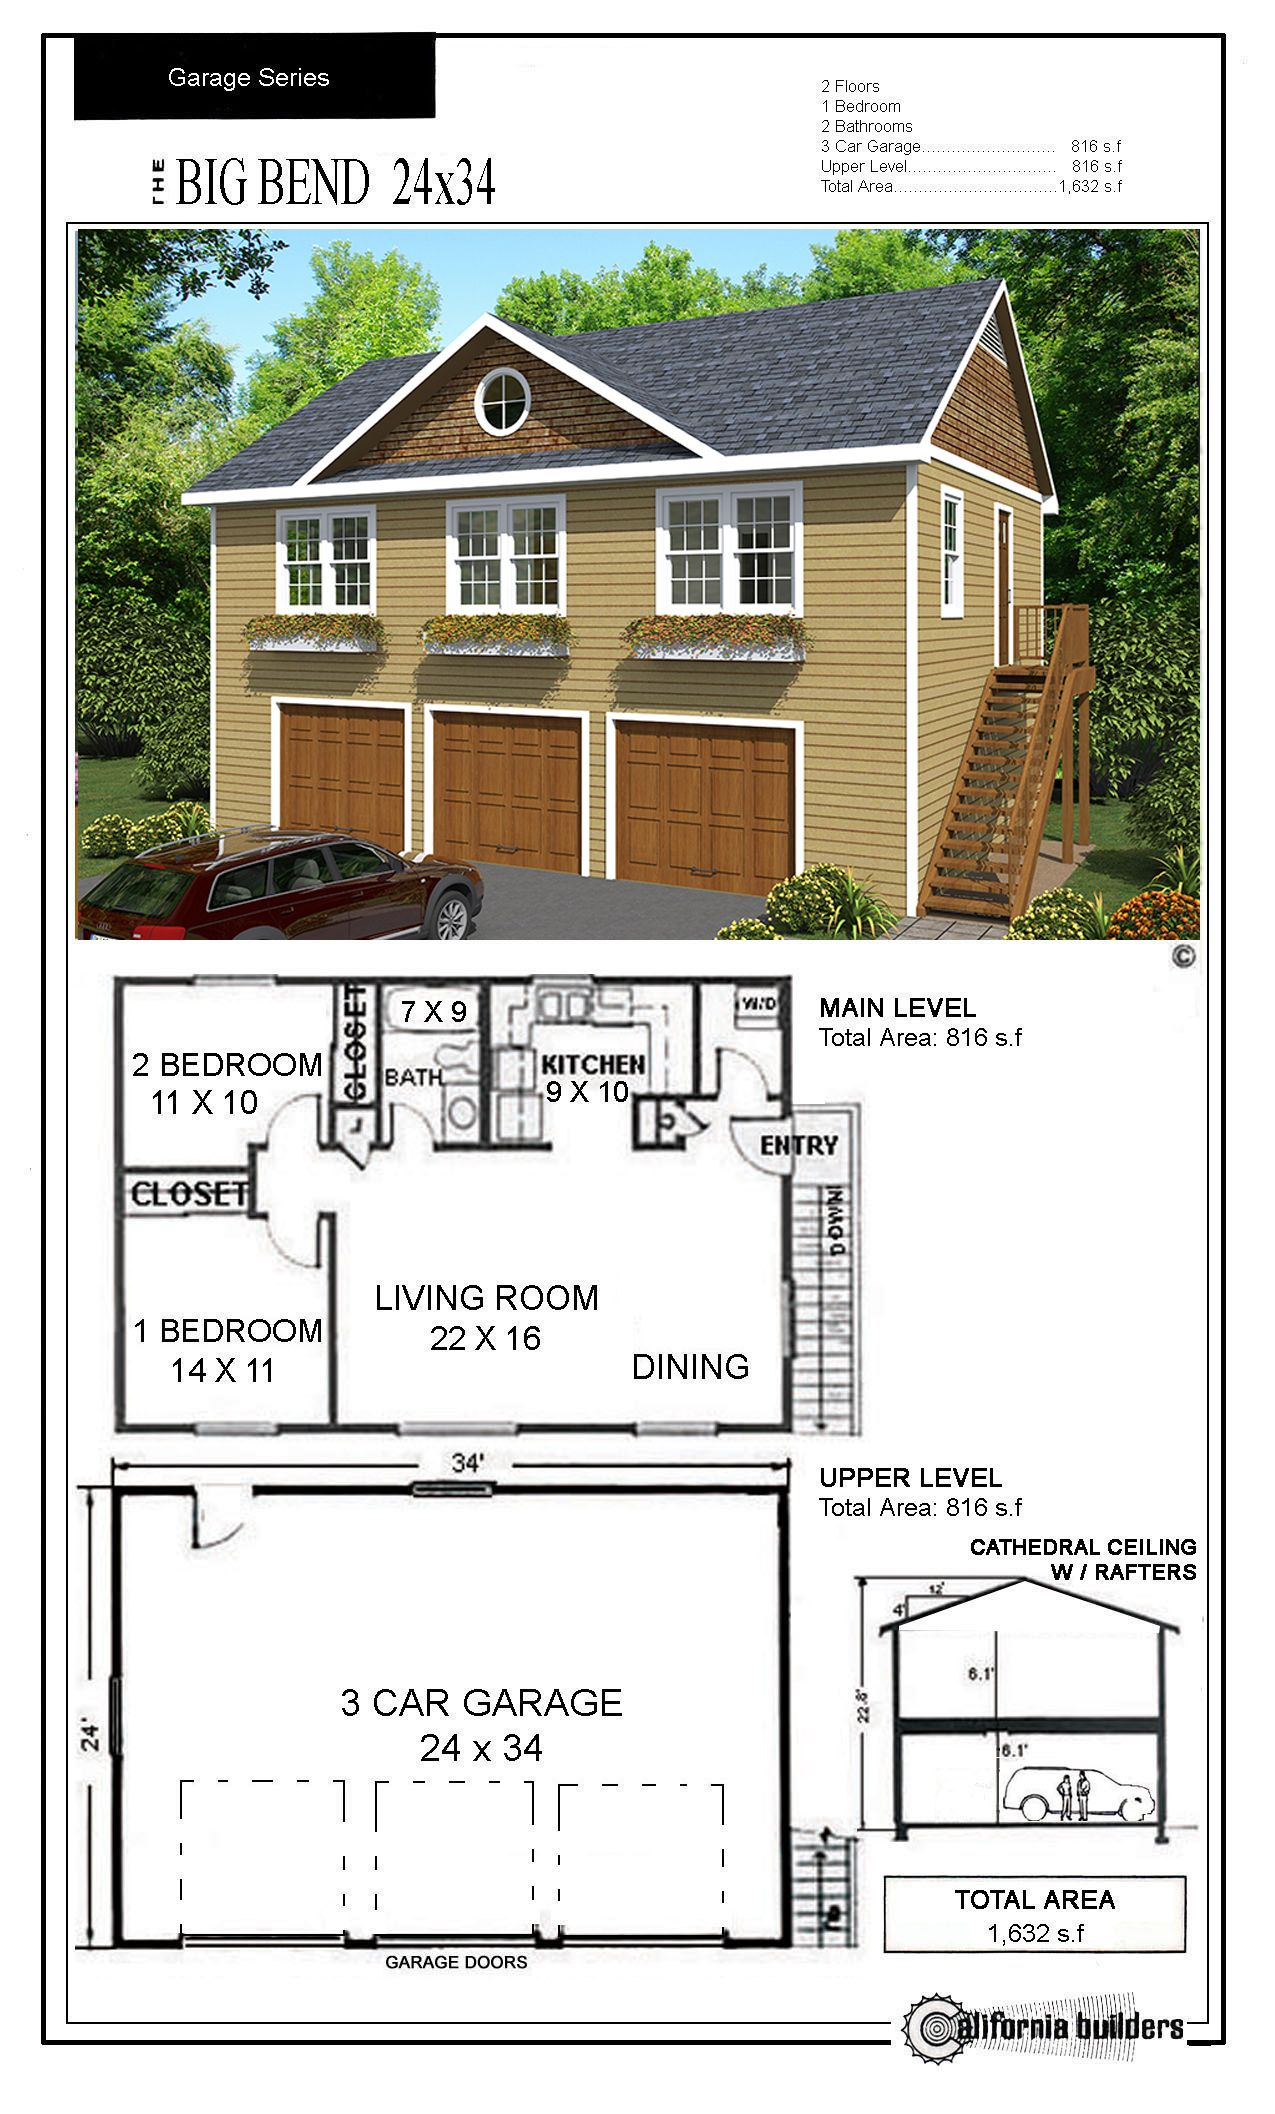 Big Bend New Jpg 1 275 2 114 Pixels Garage Apartment Plans Carriage House Plans Garage House Plans